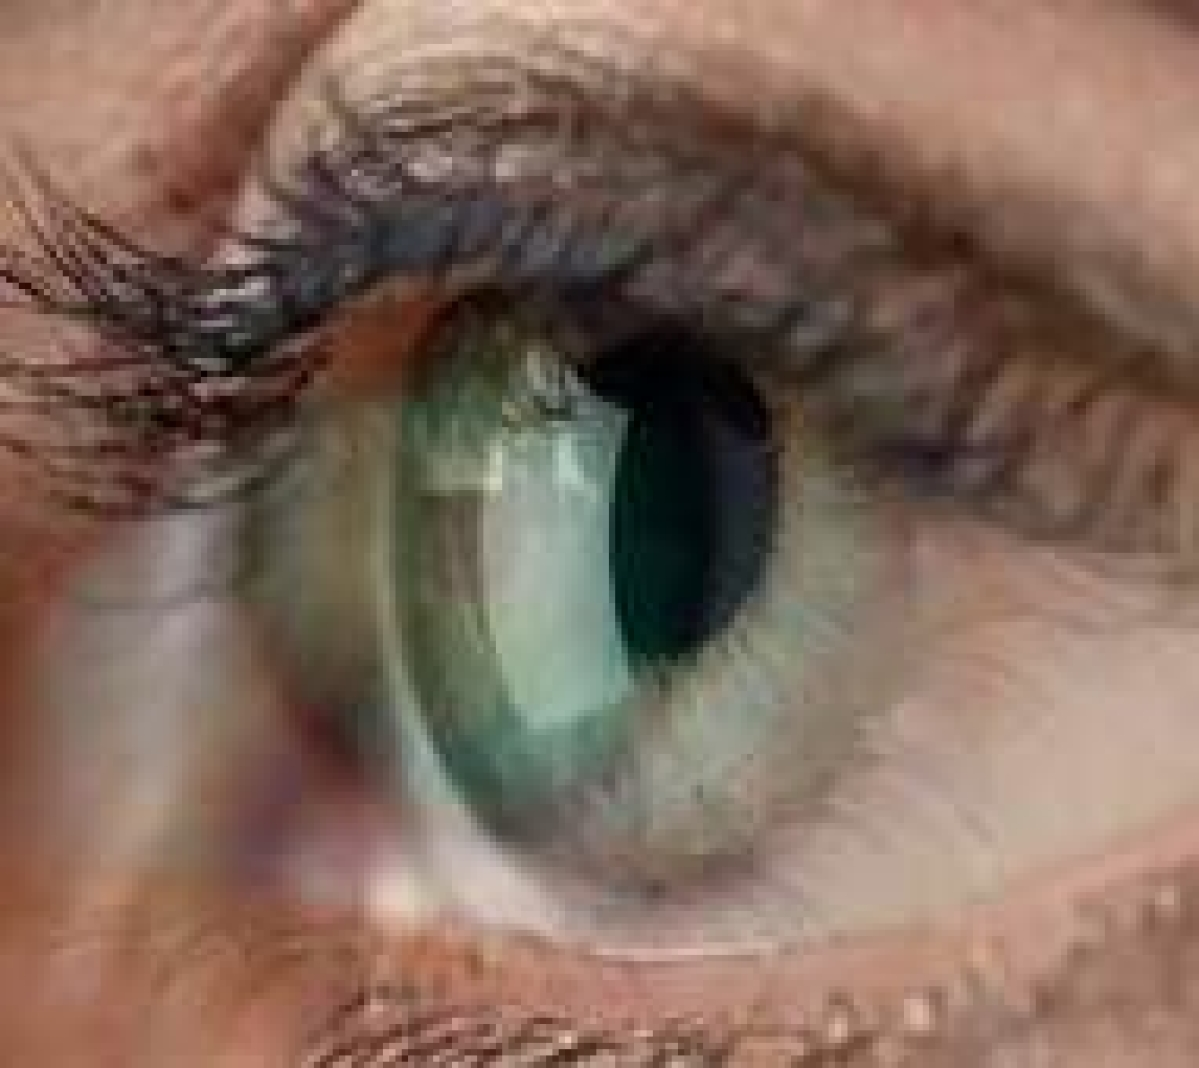 Vitamin C rich diet may slow down cataracts